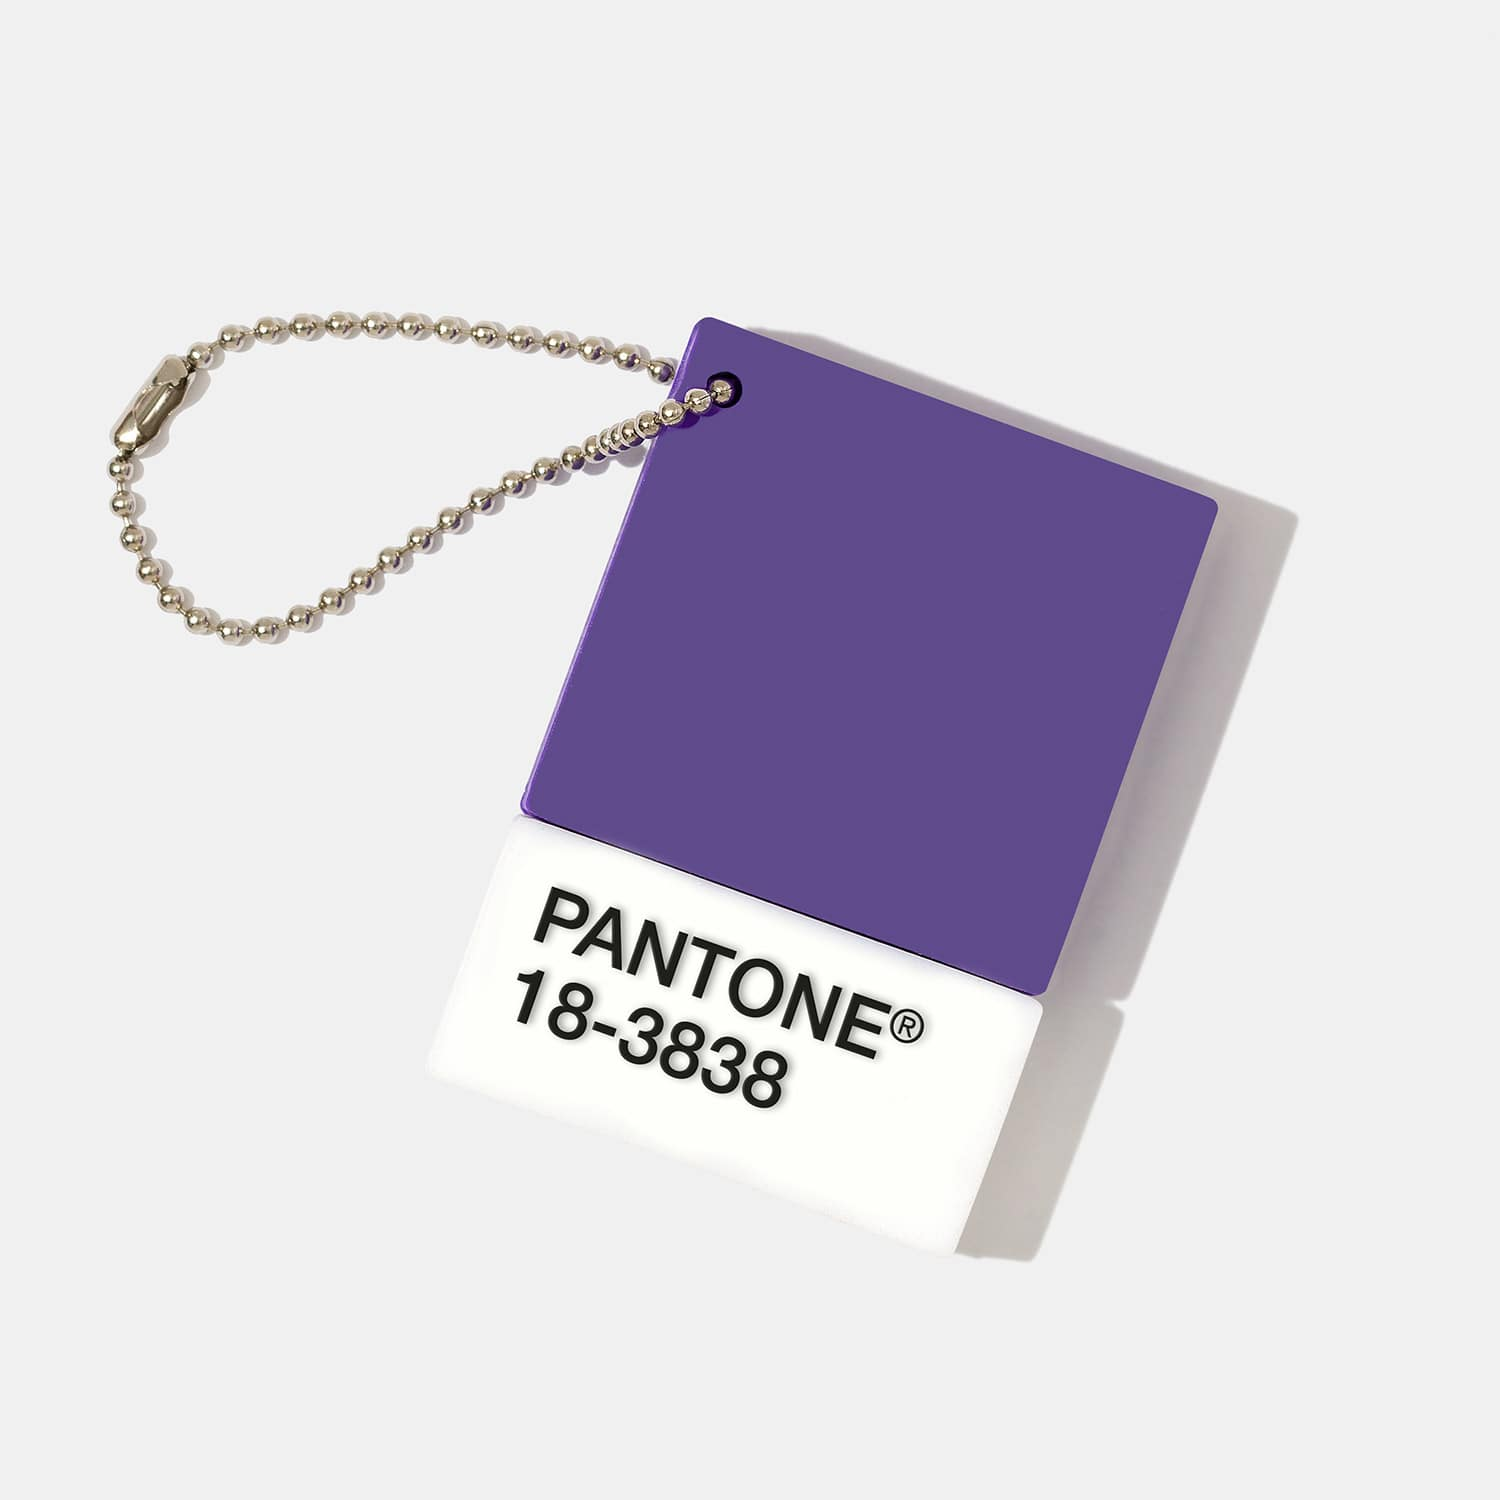 Ultra Violet - Pantone's 2018 Colour of the Year - Peony & Silk